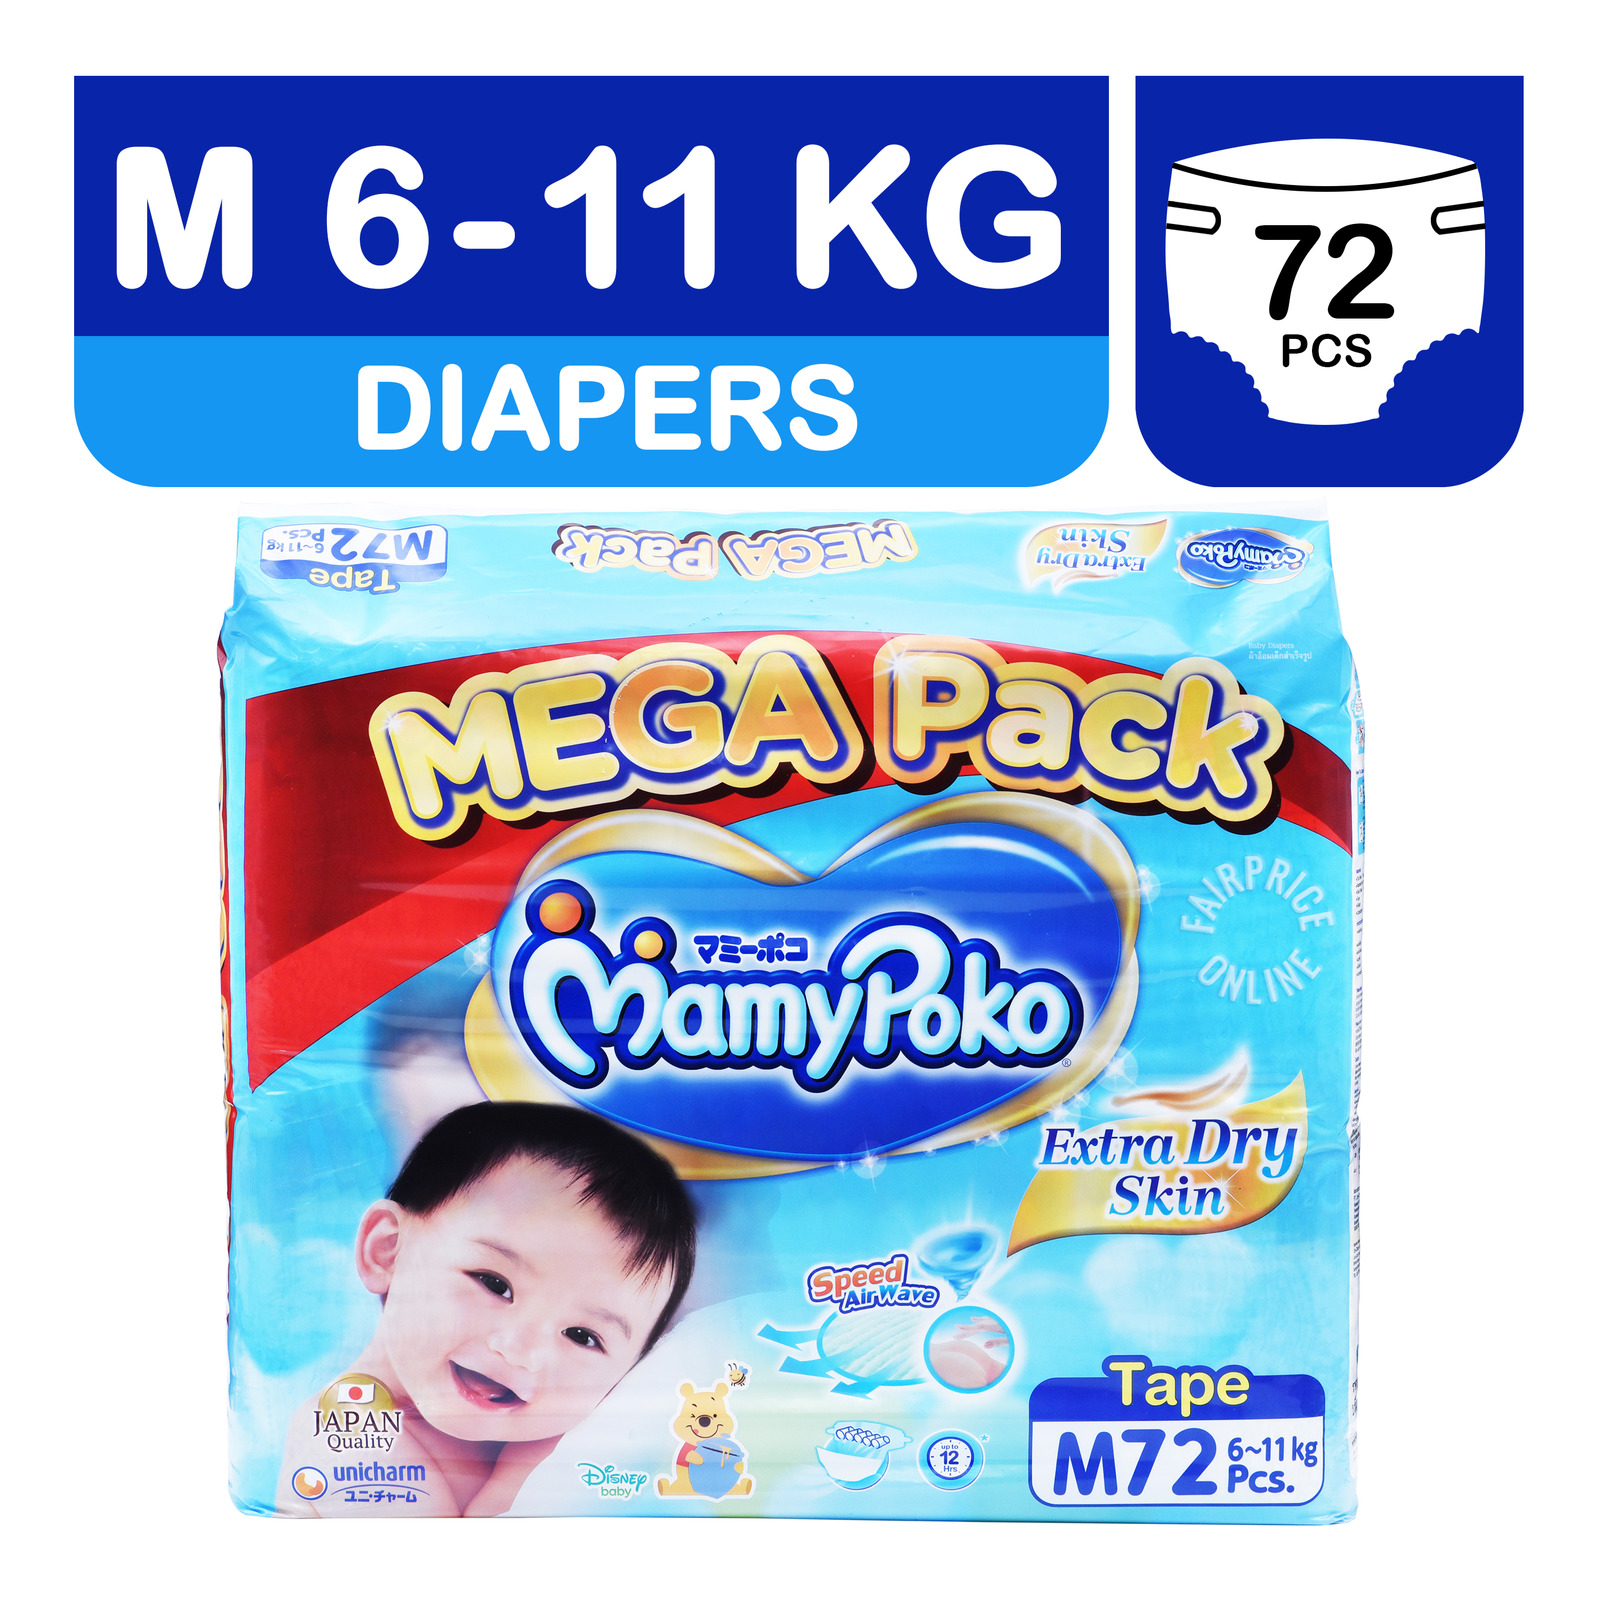 MamyPoko Extra Dry Skin Diapers - M (6 -11kg)